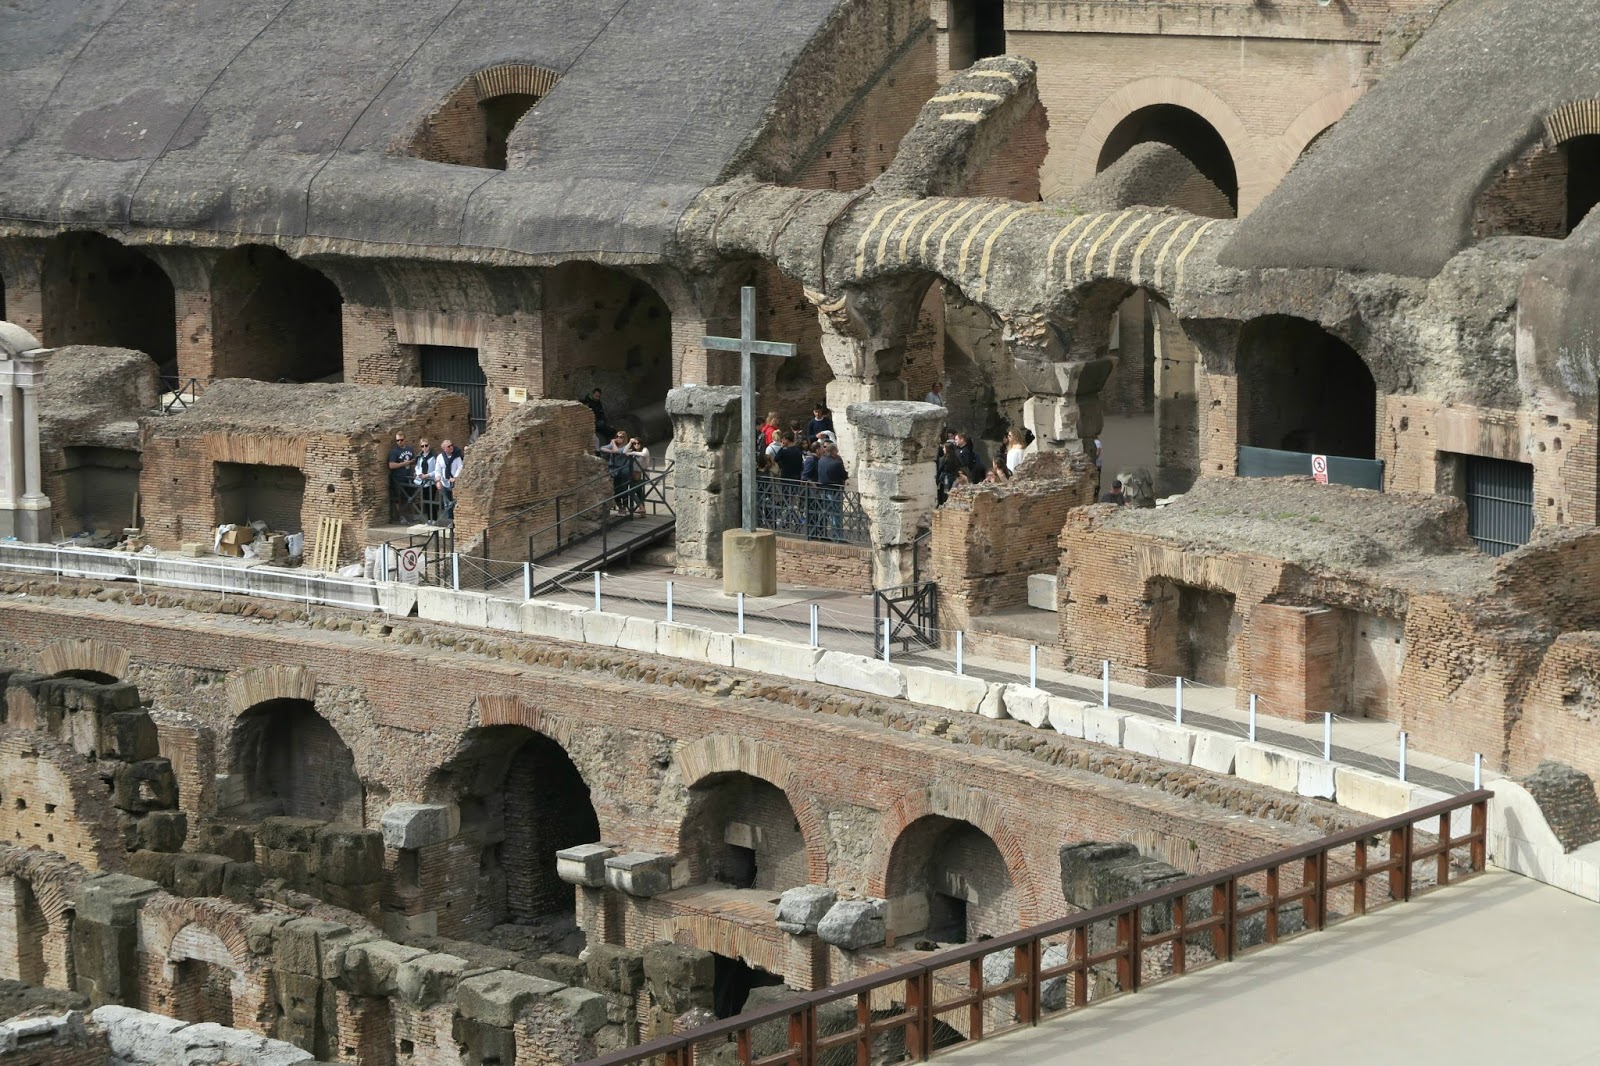 Inside the colloseum